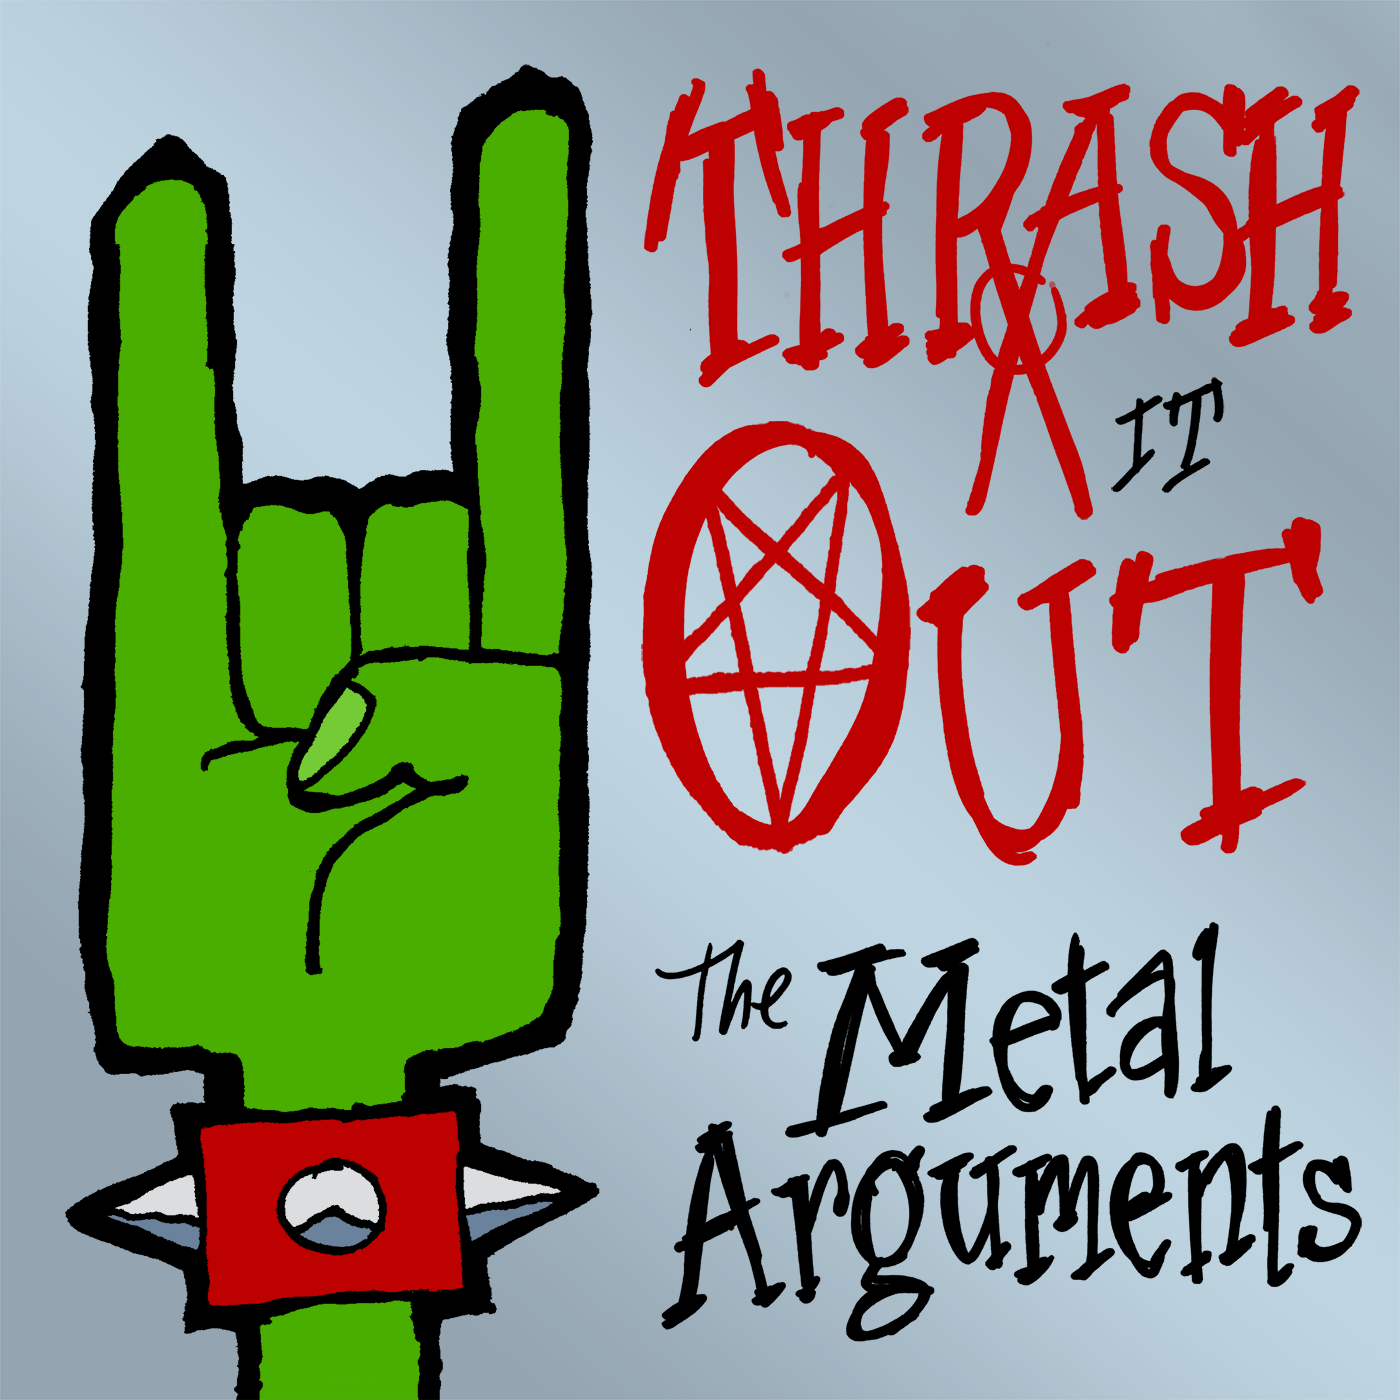 THRASH IT OUT